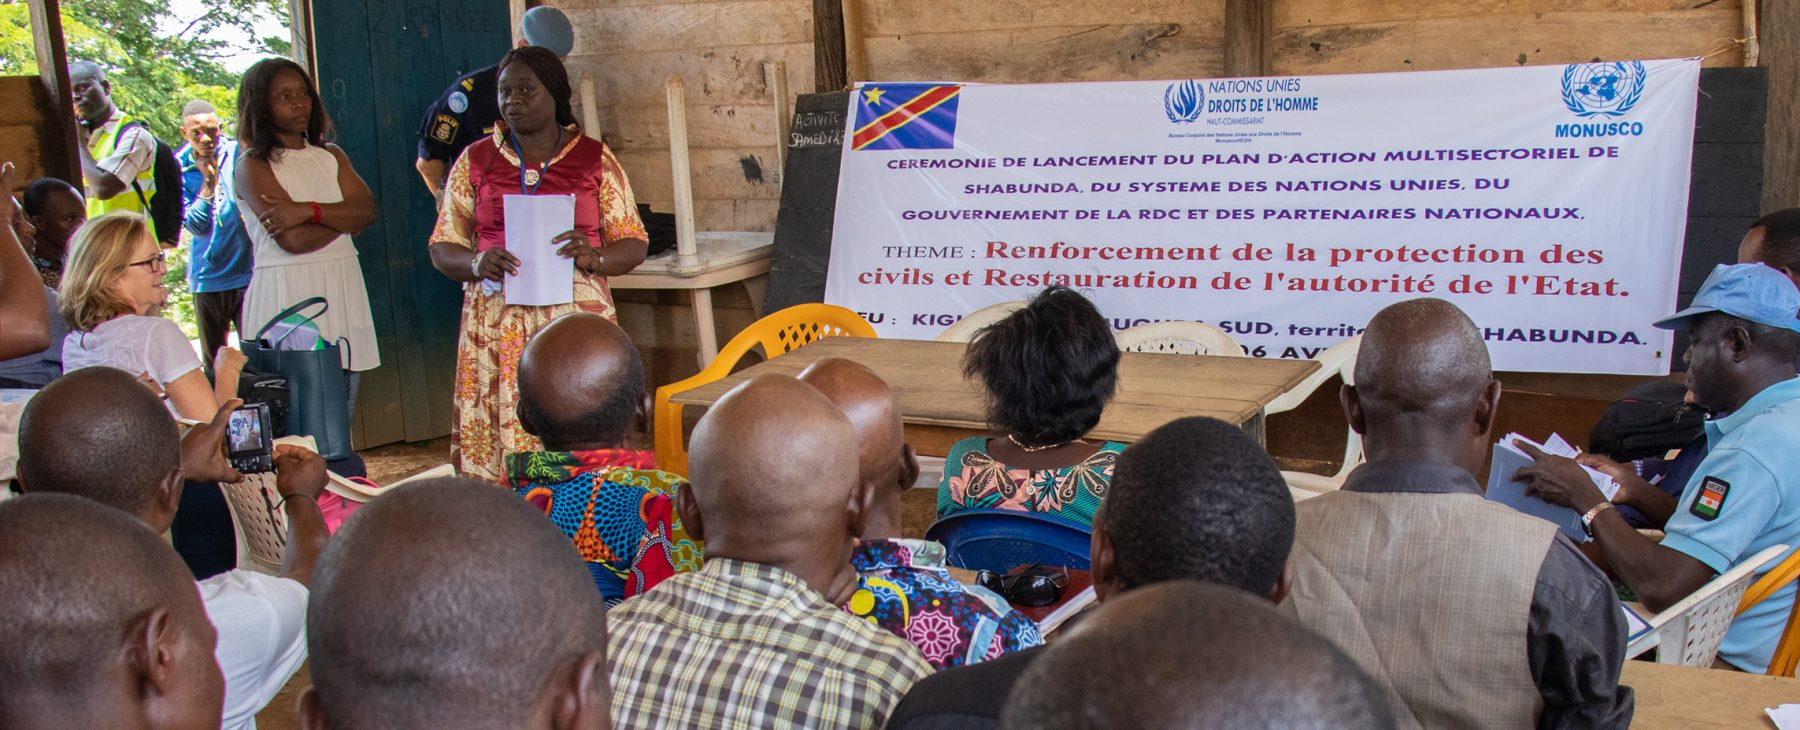 The United Nations and its partners in the DRC have launched a stabilization plan for Shabunda